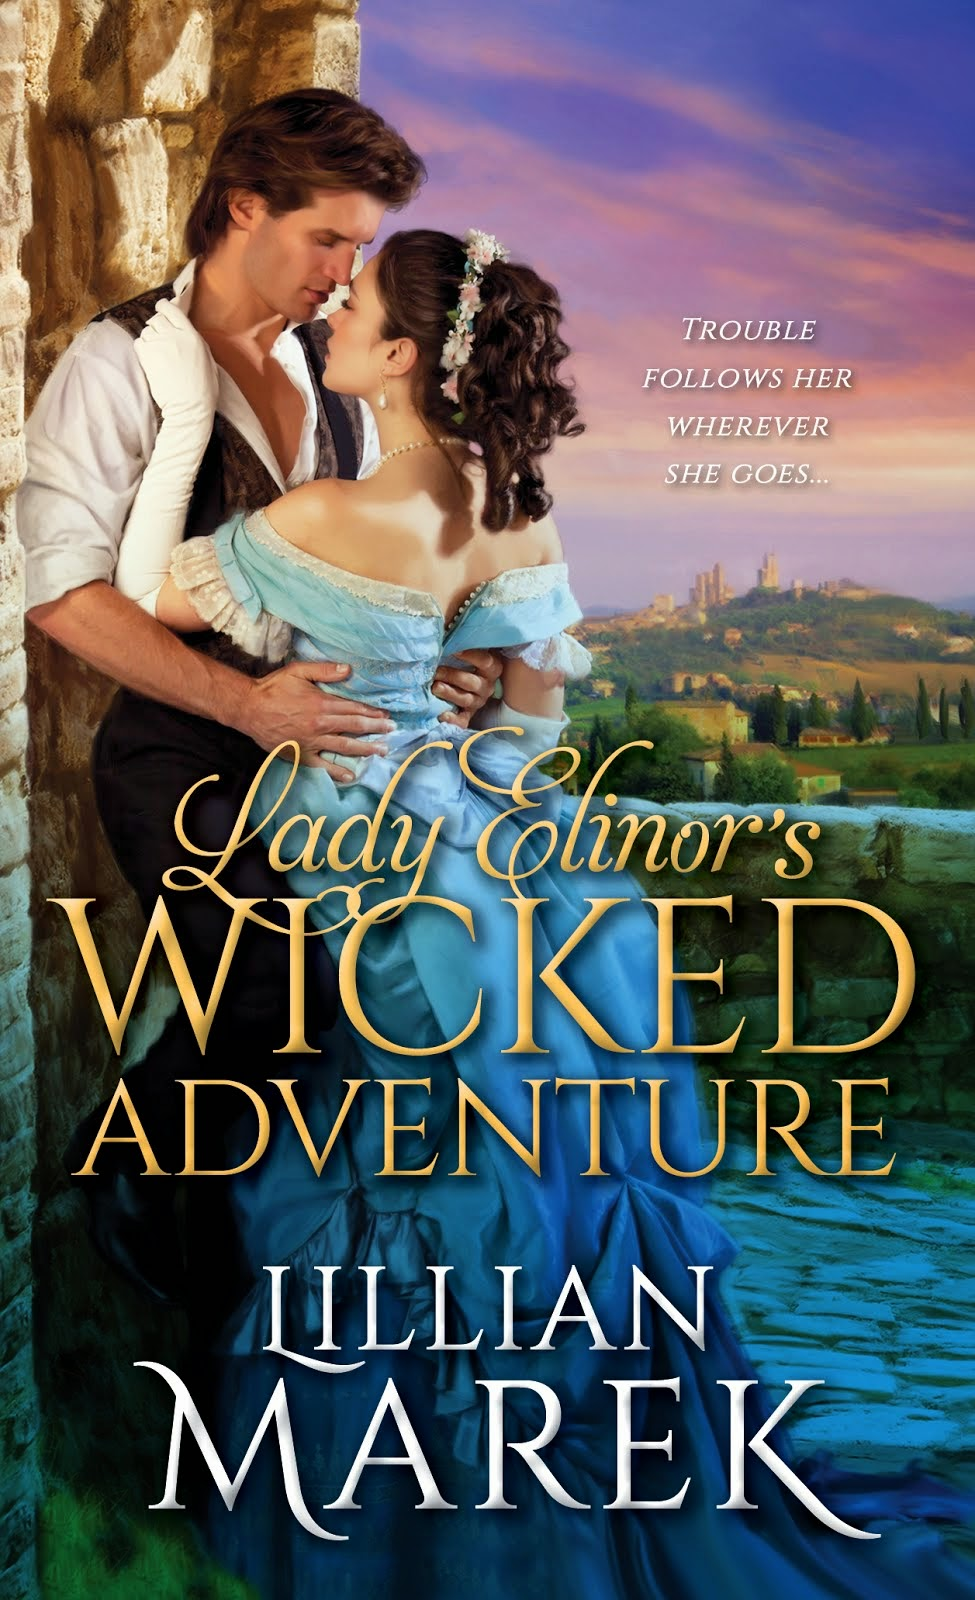 Lady Elinor's Wicked Adventure